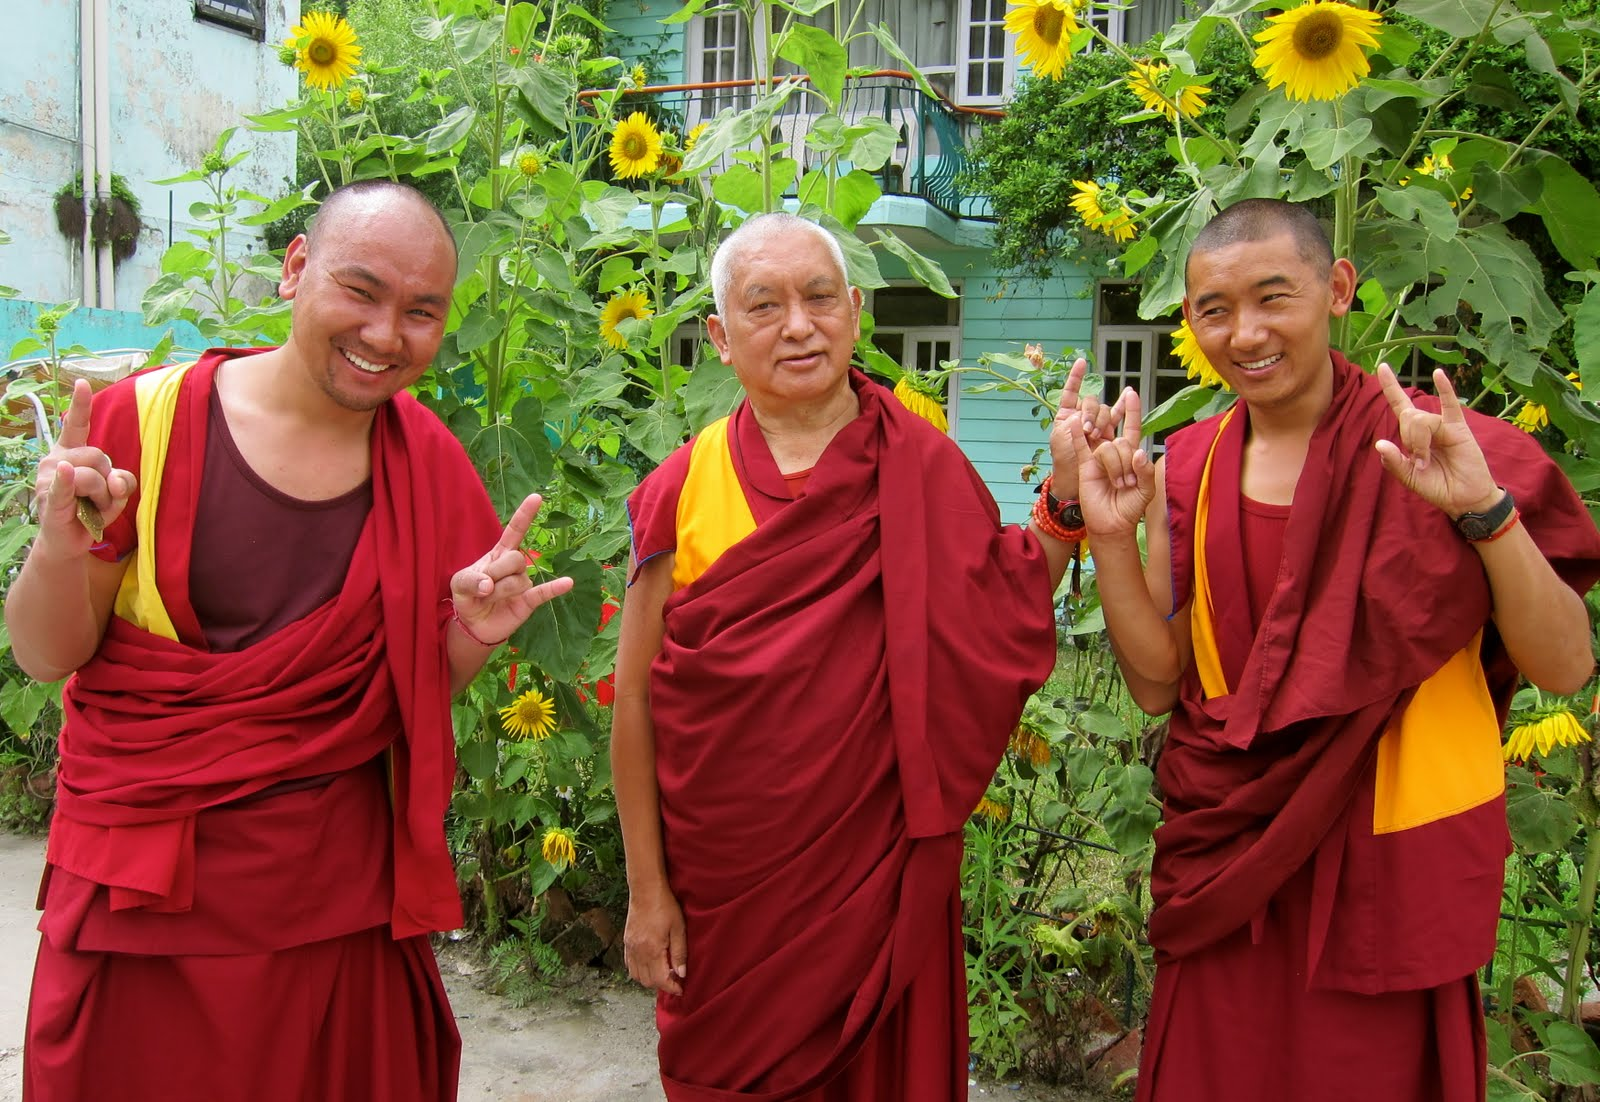 Rinpoche with Ven.Tendar and Ven. Sangpo in Manali, India, July 30, 2013. Photo: Ven. Sarah Thresher.